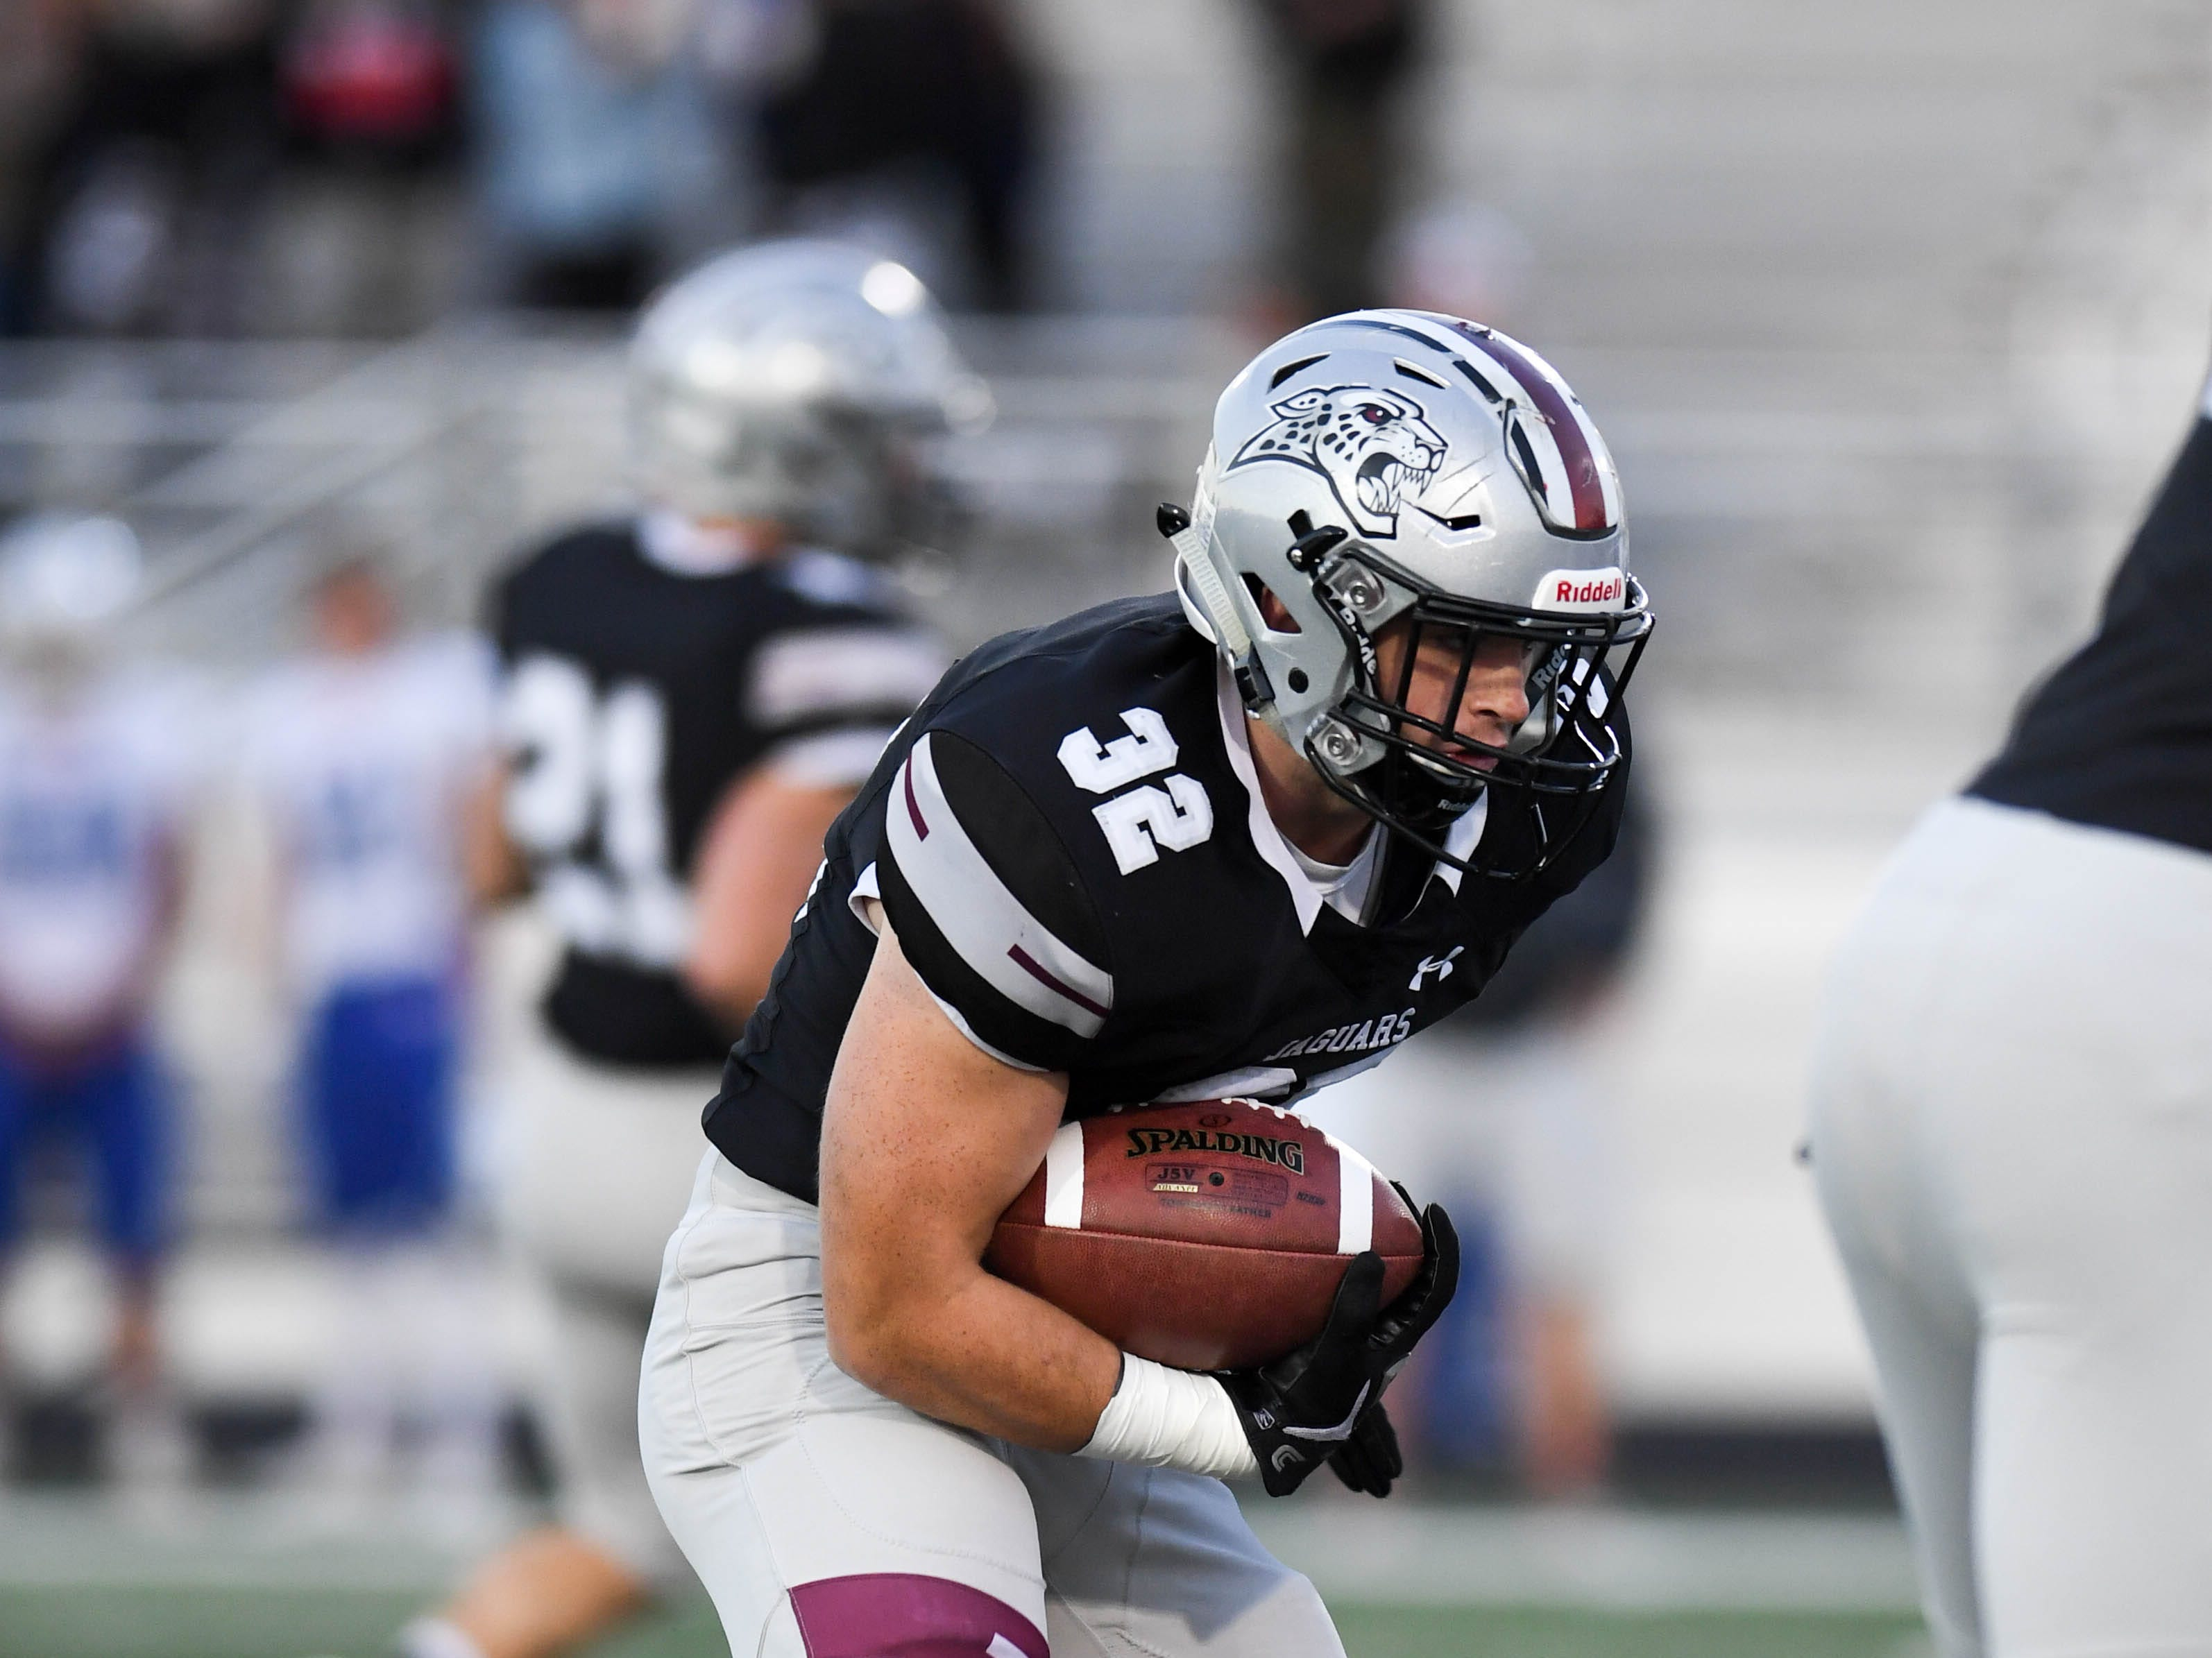 Ankeny Centennial's Gabe Godwin (32) looks for a running lane on Friday, Sept. 21, 2018 during a football game between the Ankeny Centennial Jaguars and the Marshalltown Bobcats at Northview Middle School.